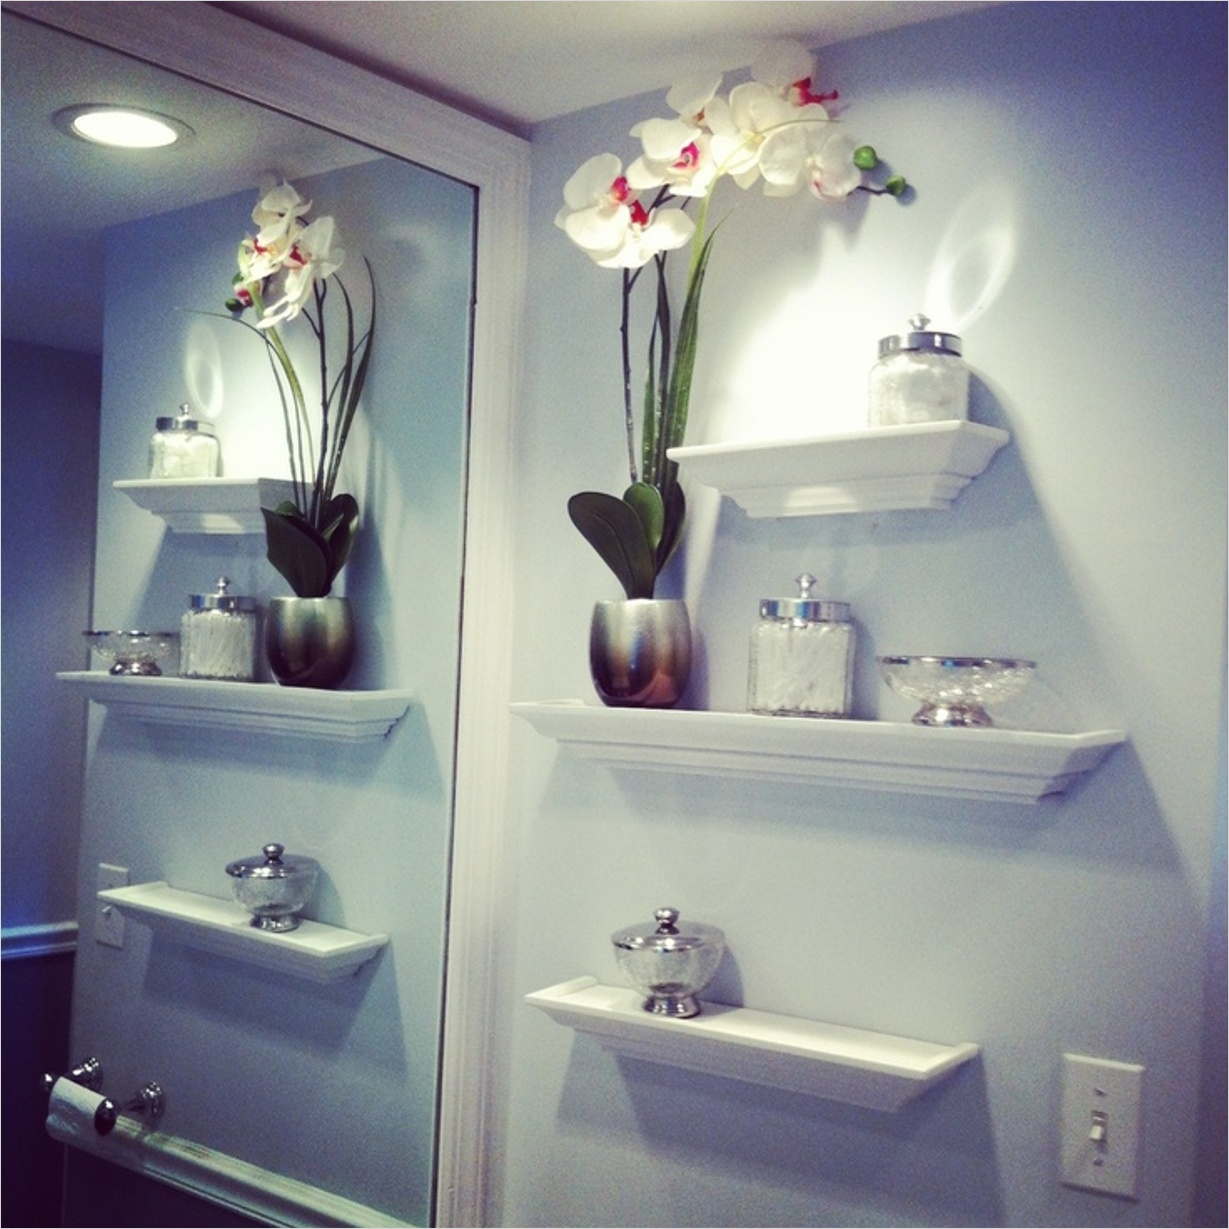 Bathroom Shelves Decorating Ideas 17 Beautiful Bathroom Wall Decor Using Sweet Flower Vase Decoration Over Wall Mounted Shelves 6